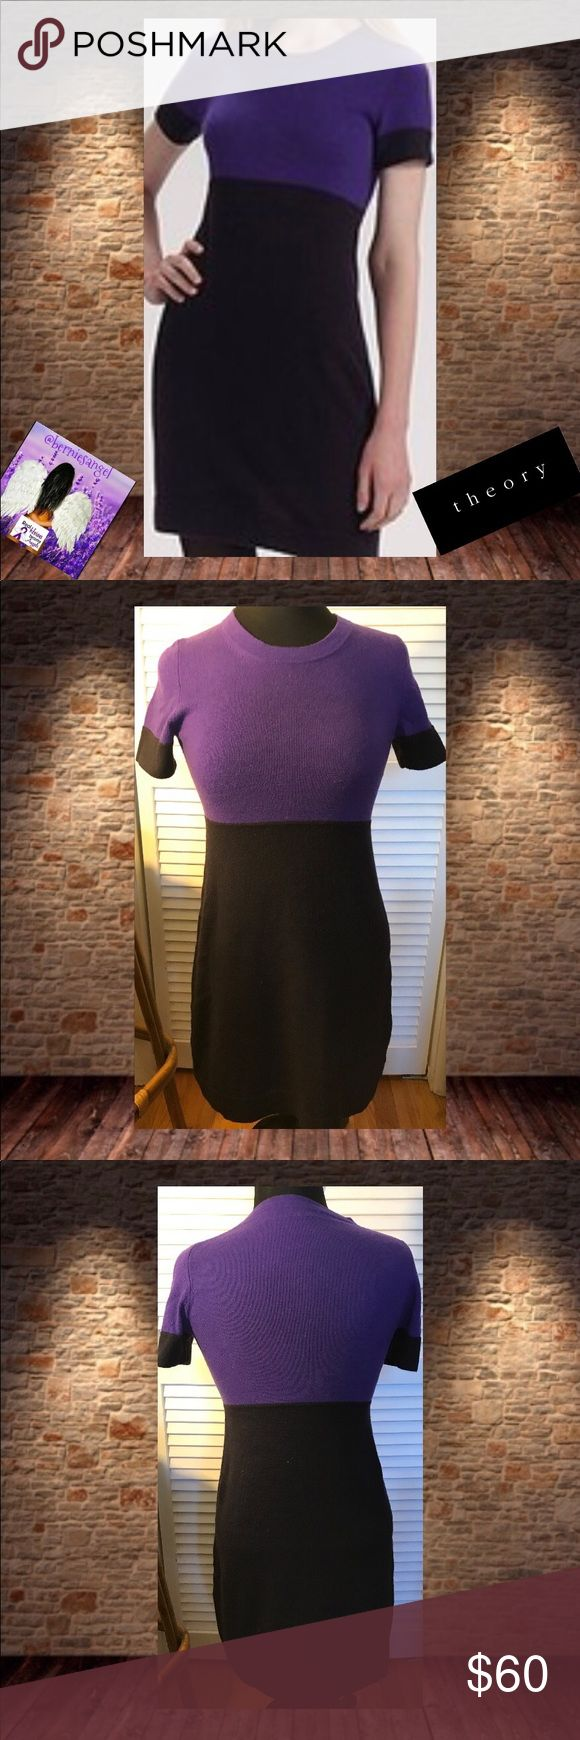 """Theory Color Block Vanella  Cashmere Dress S NWOT Theory Color Block Vanella  Cashmere Dress S NWOT Measurements (laid flat)  Shoulders 12""""  Underarms 14.75  Waist 13.75  Length 36.5  🚫trades. Please ask all questions prior to buying Theory Dresses Midi"""